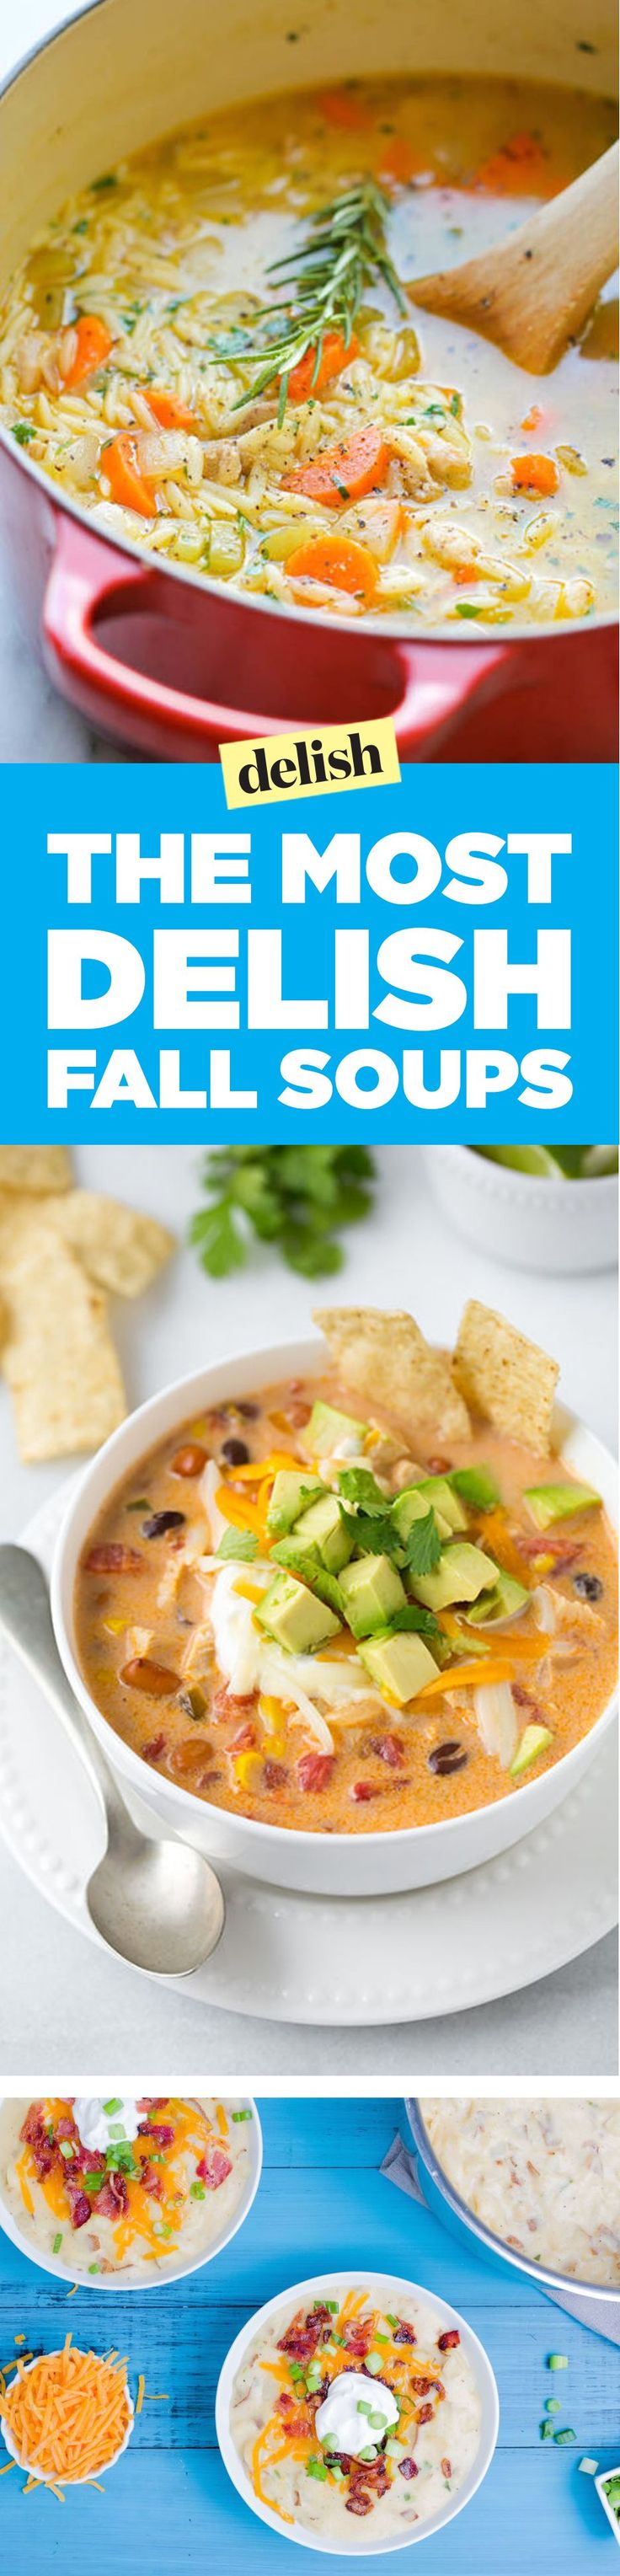 The 50 Most Delish Fall Soups